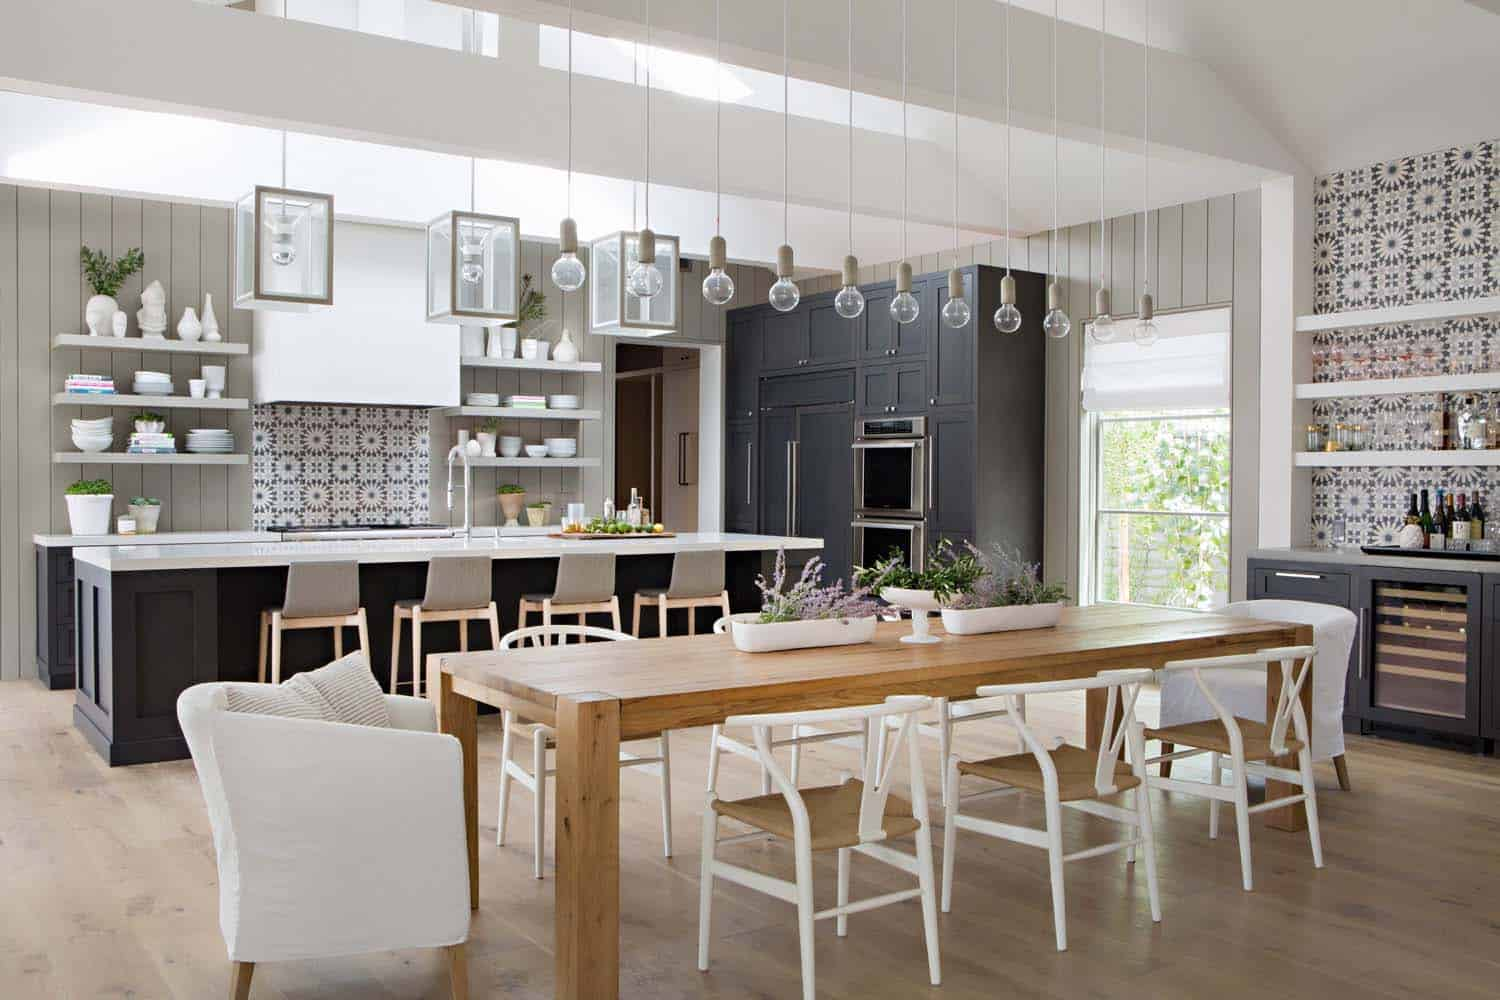 Modern Farmhouse Style-Eric Olsen Design-06-1 Kindesign